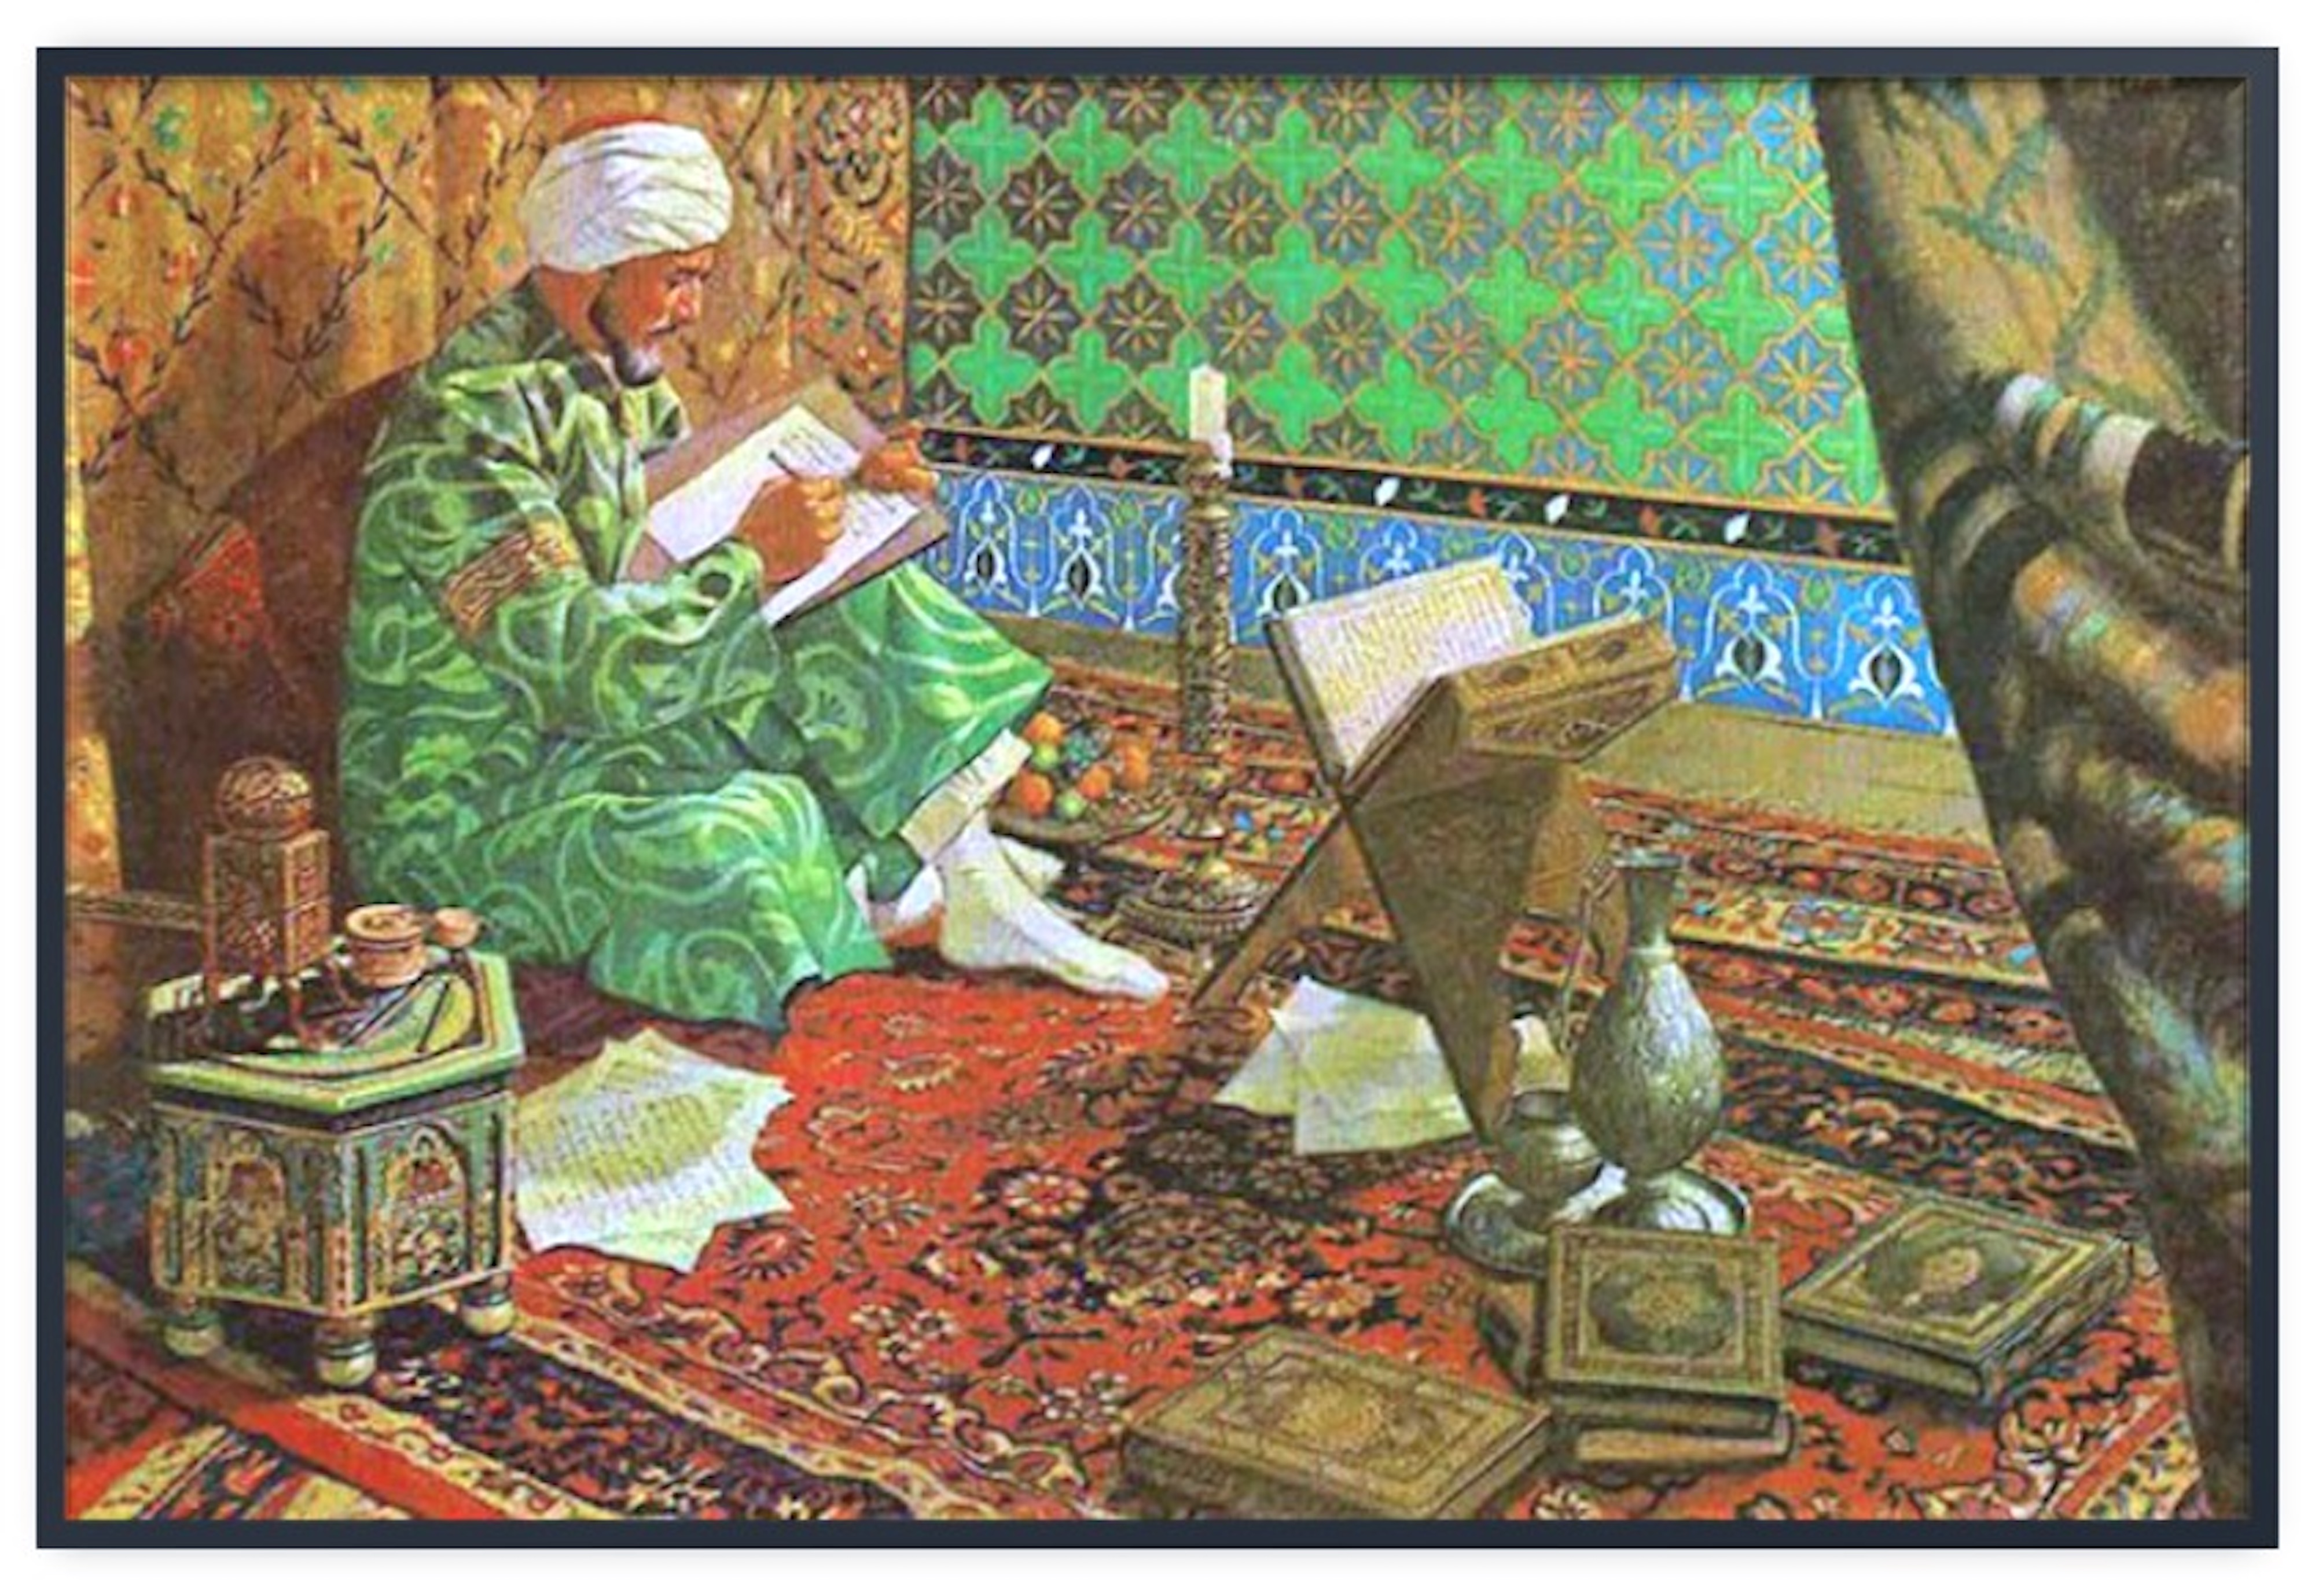 Ibn Sina, who is credited with first experimenting with quarantining patients.